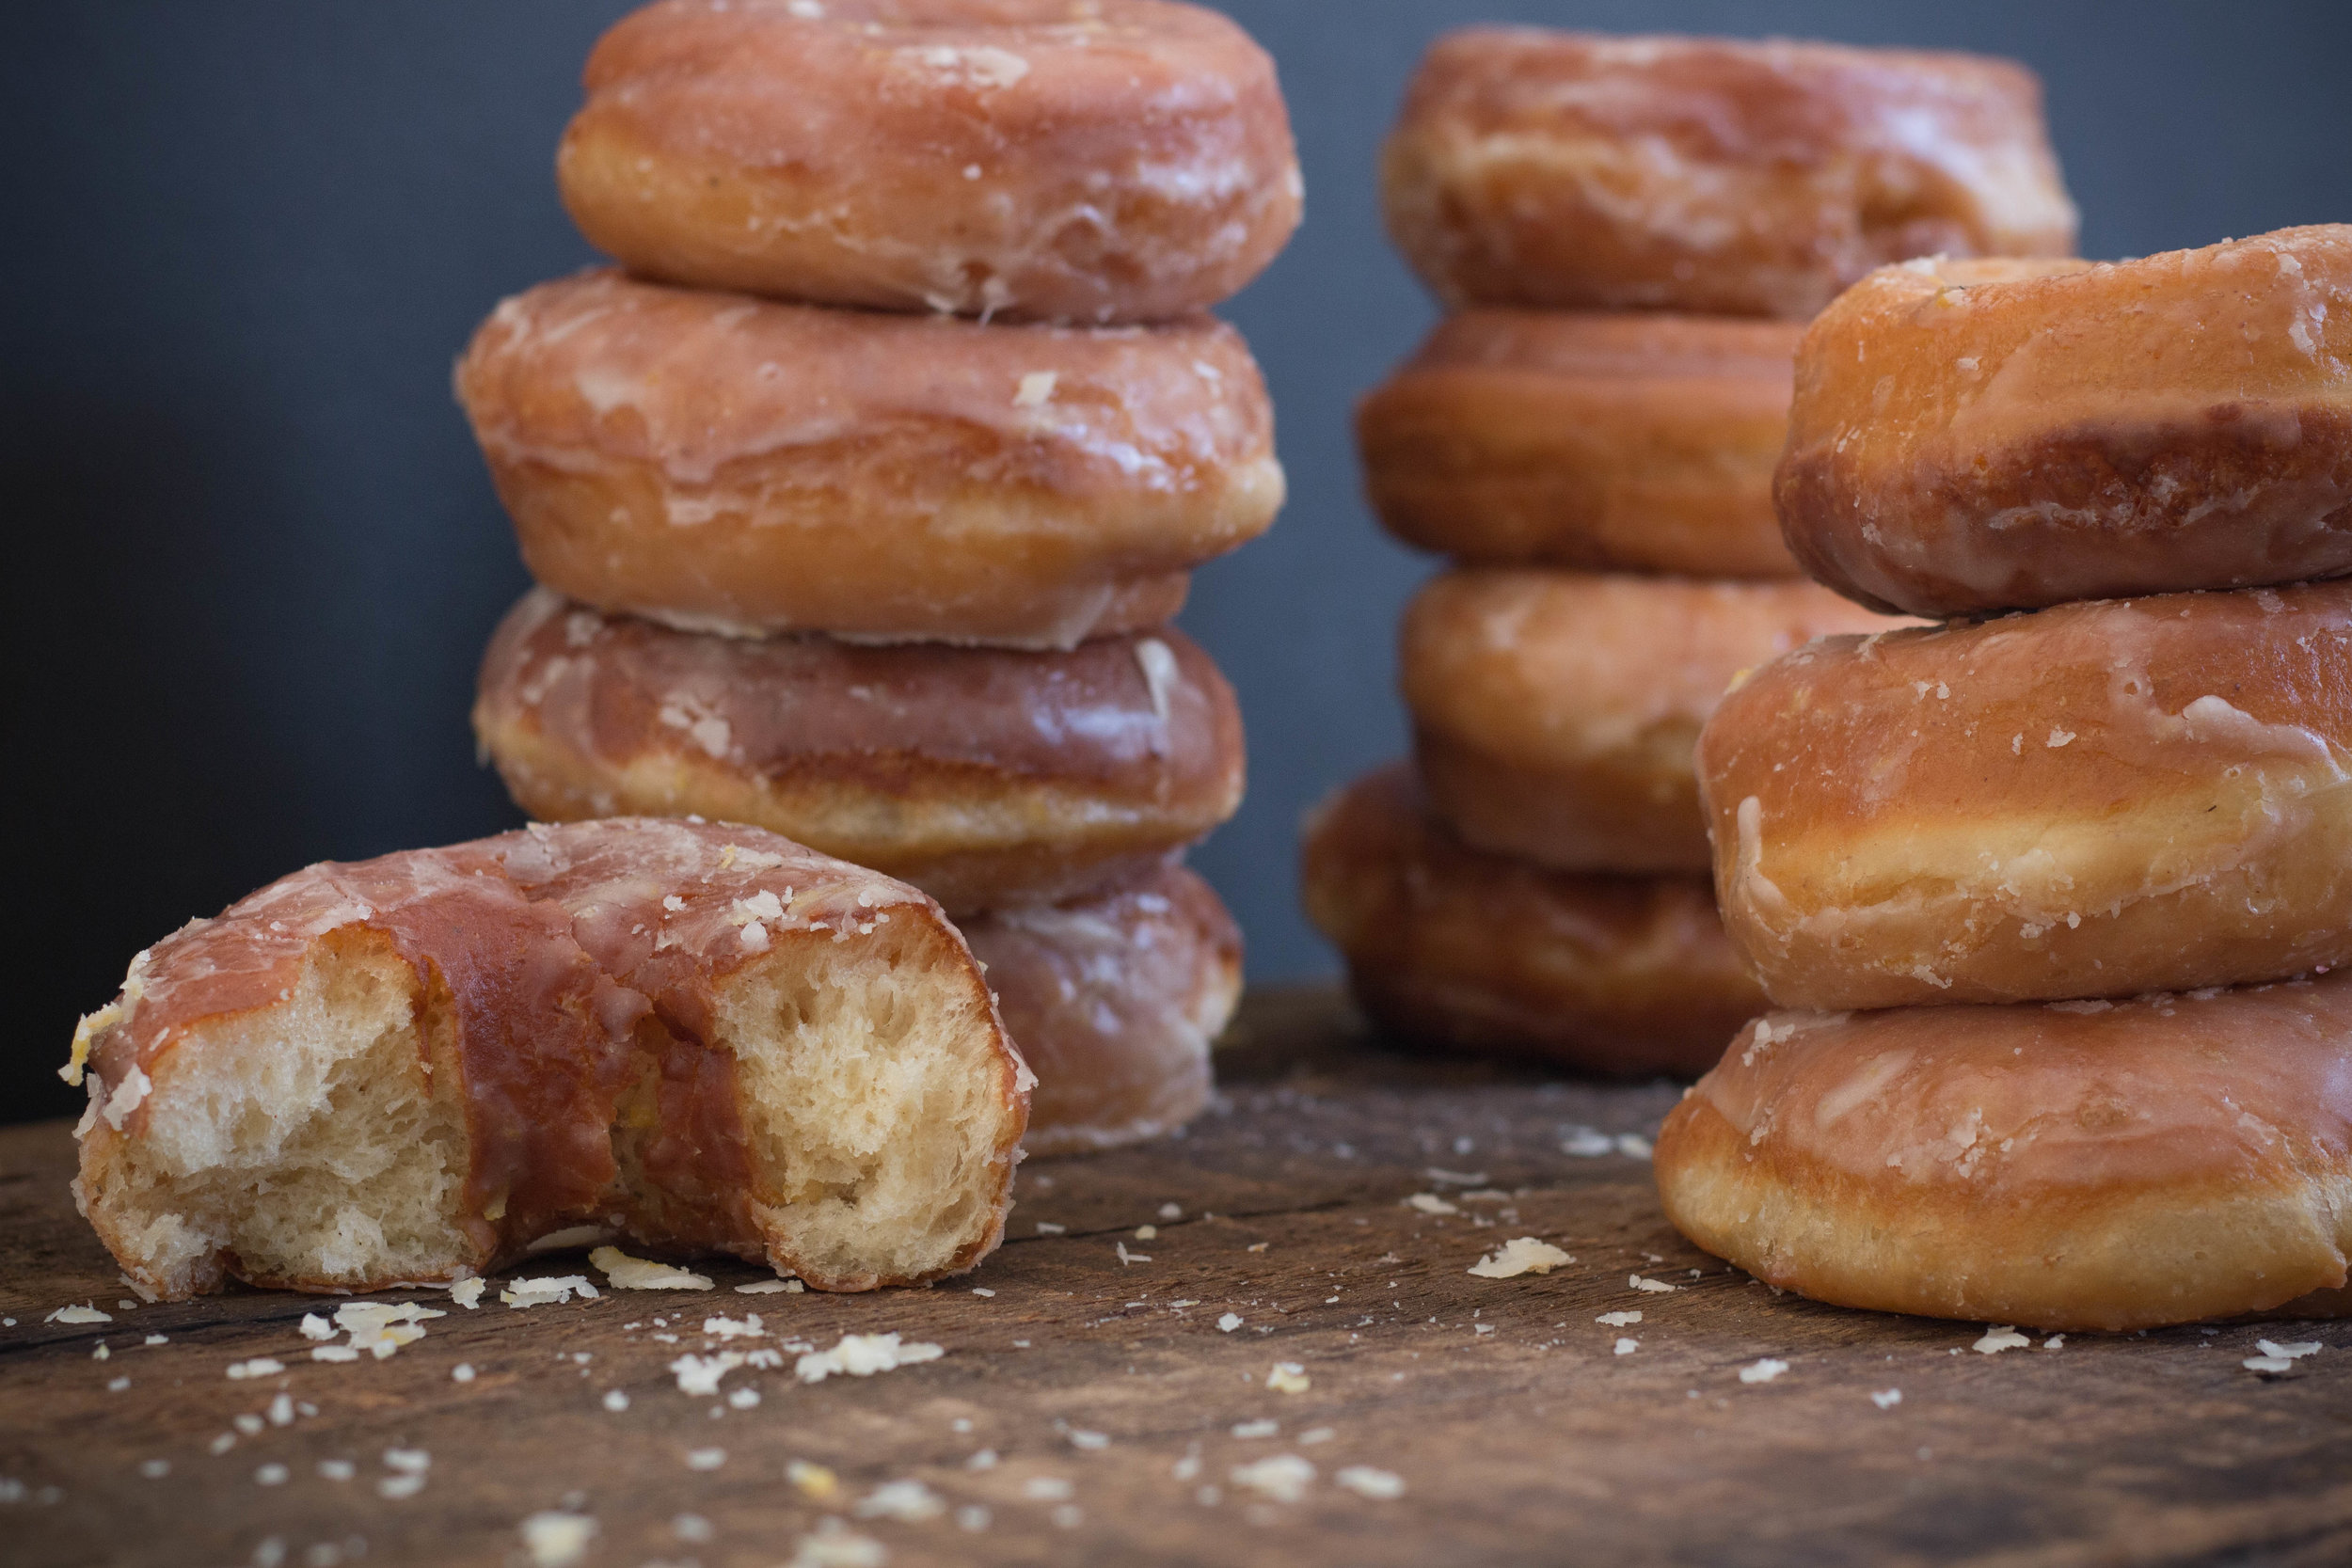 Once the glaze is set, it is perfectly stuck to the donuts, and it doesn't stick to your fingers.